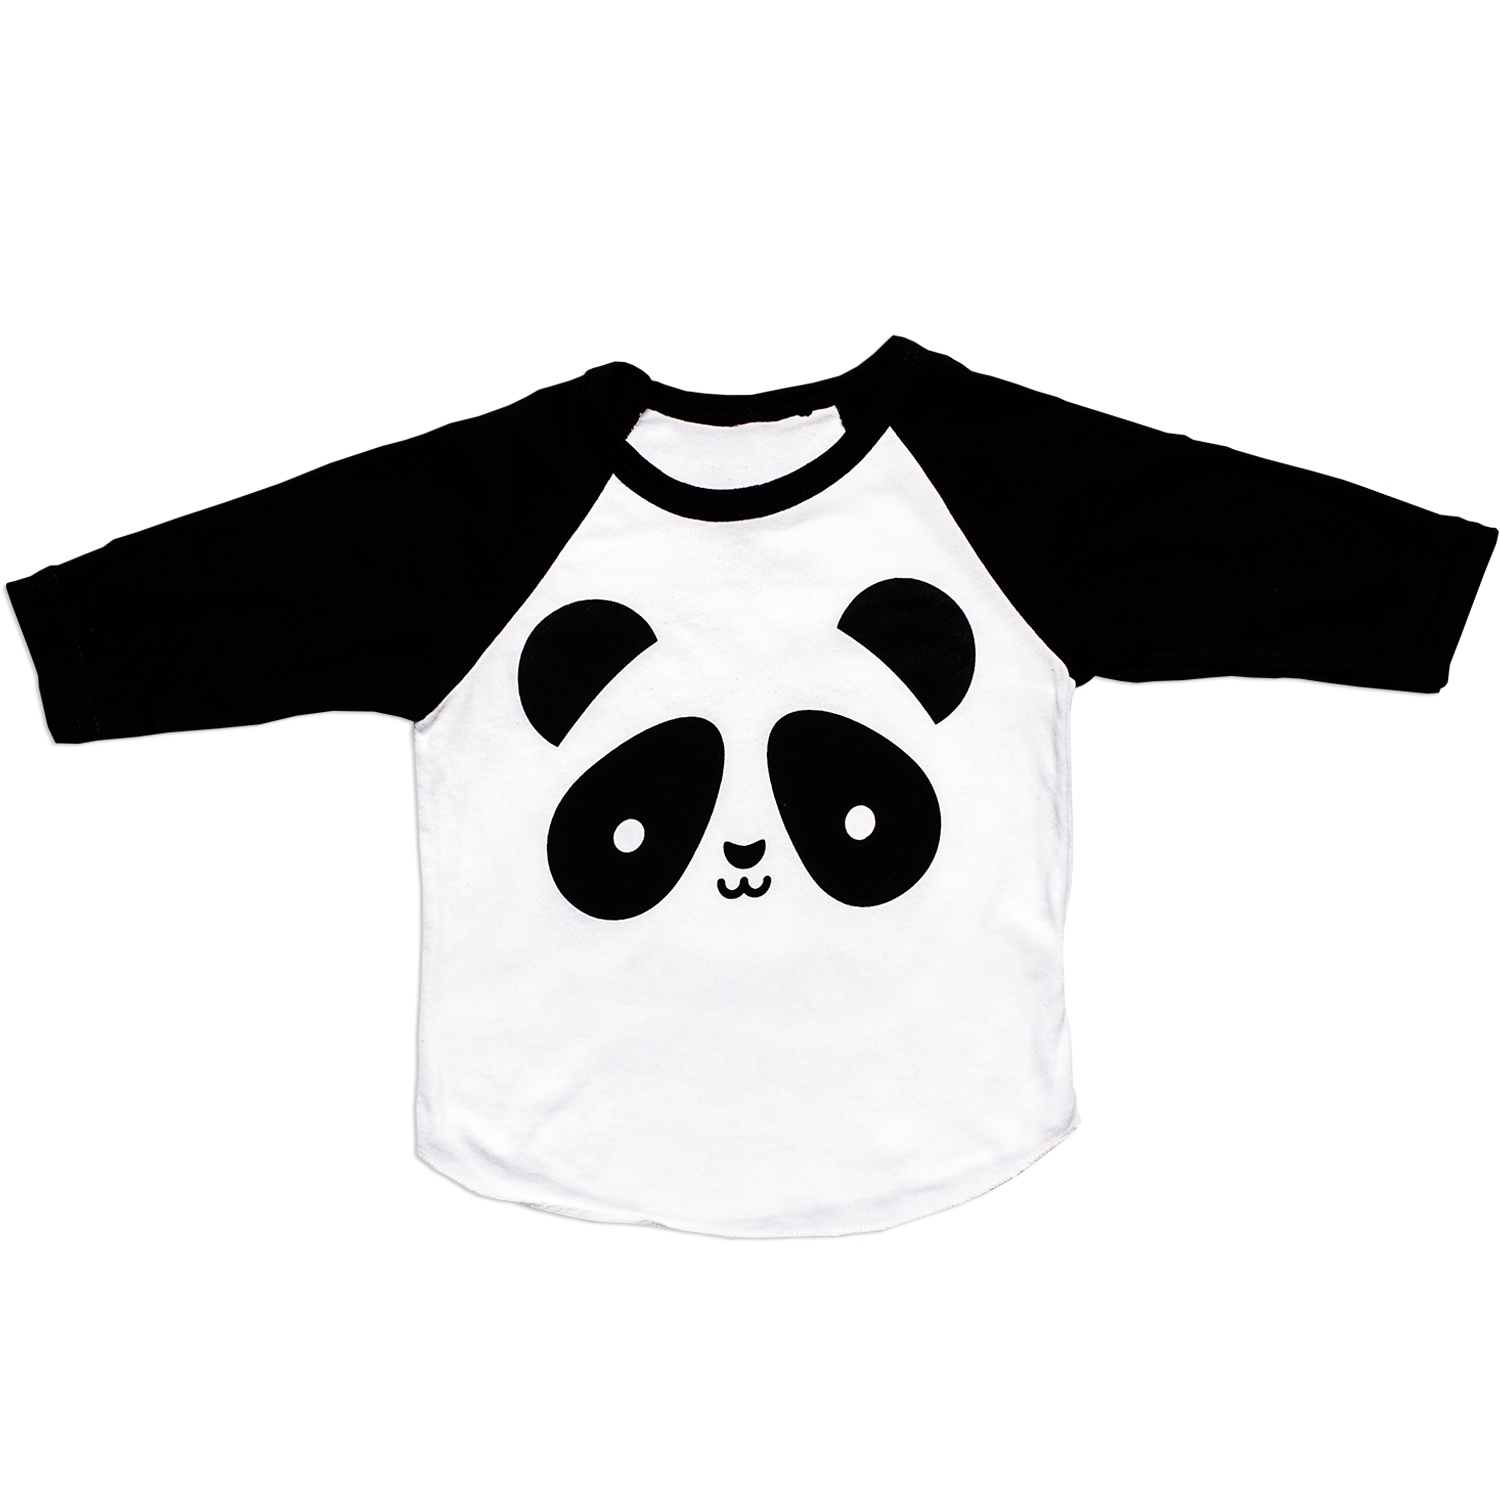 Kawaii Panda Baseball TShirt Panda shirt, Kids outfits